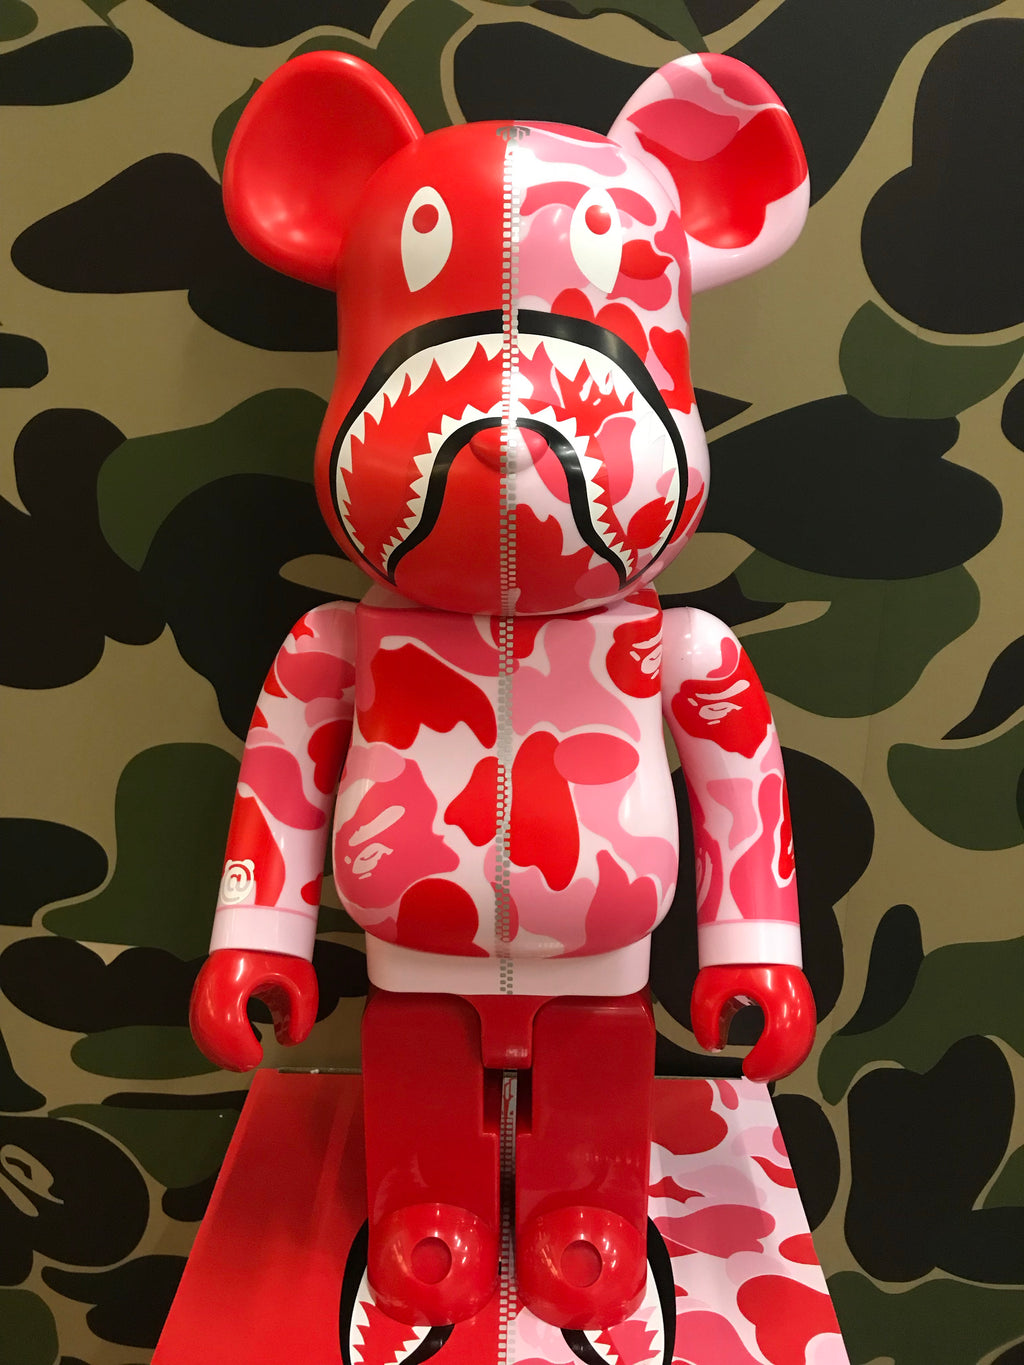 Bape ABC Camo Shark 1000% Bearbrick Pink - Exhibit A